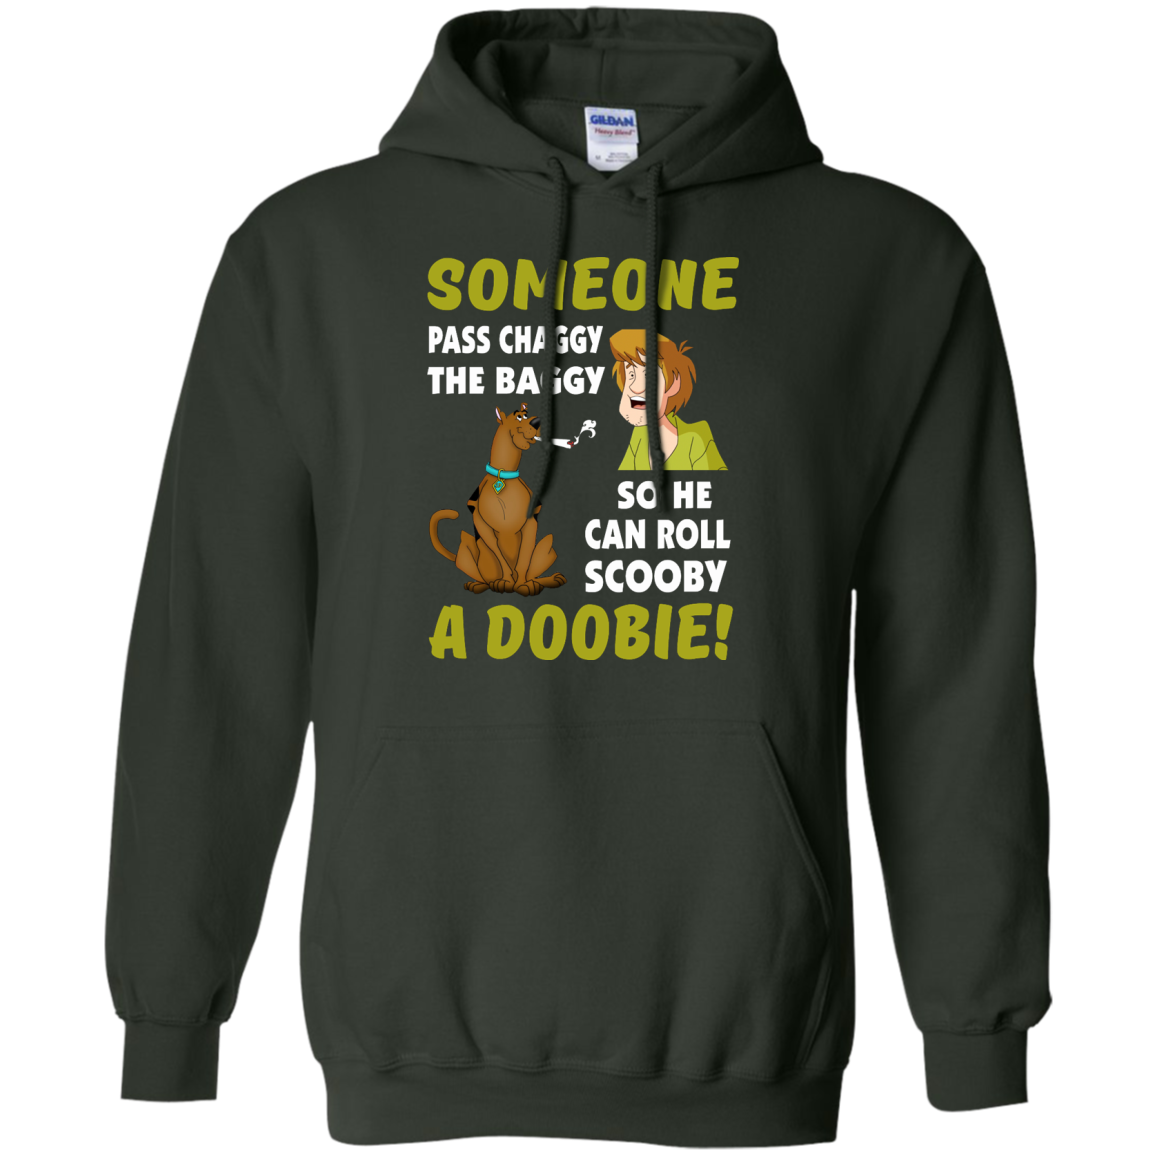 image 62px Scooby Doo: Someone Pass Chaggy The Baggy T Shirt